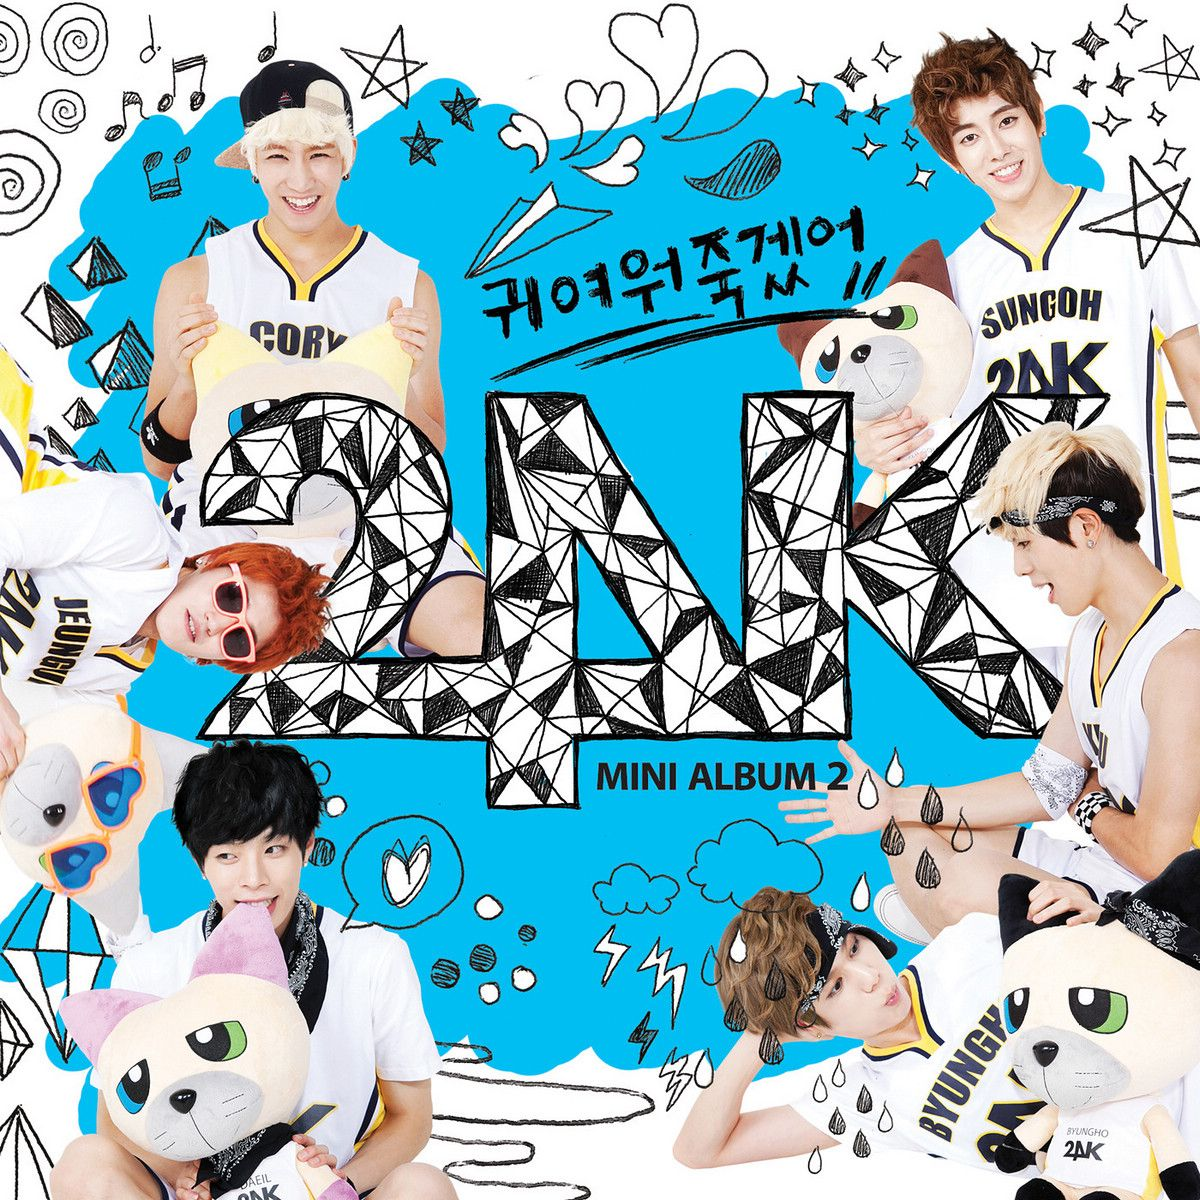 [Mini Album] 24K - U R SO CUTE (MP3)